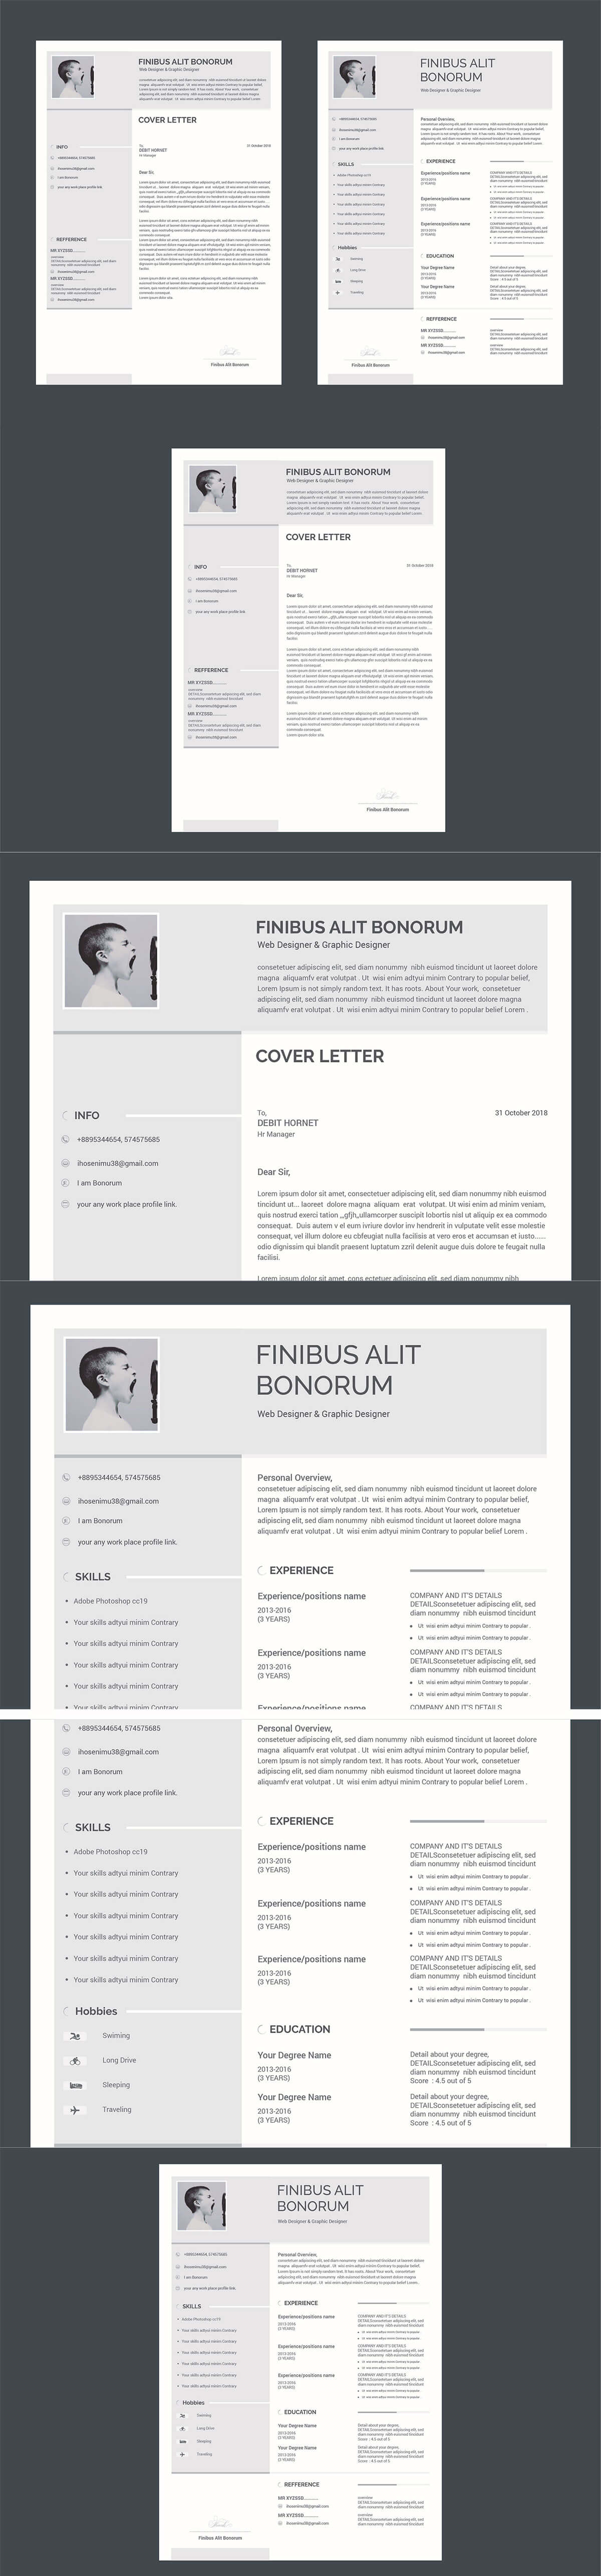 Free Resume & Cover Letter Template